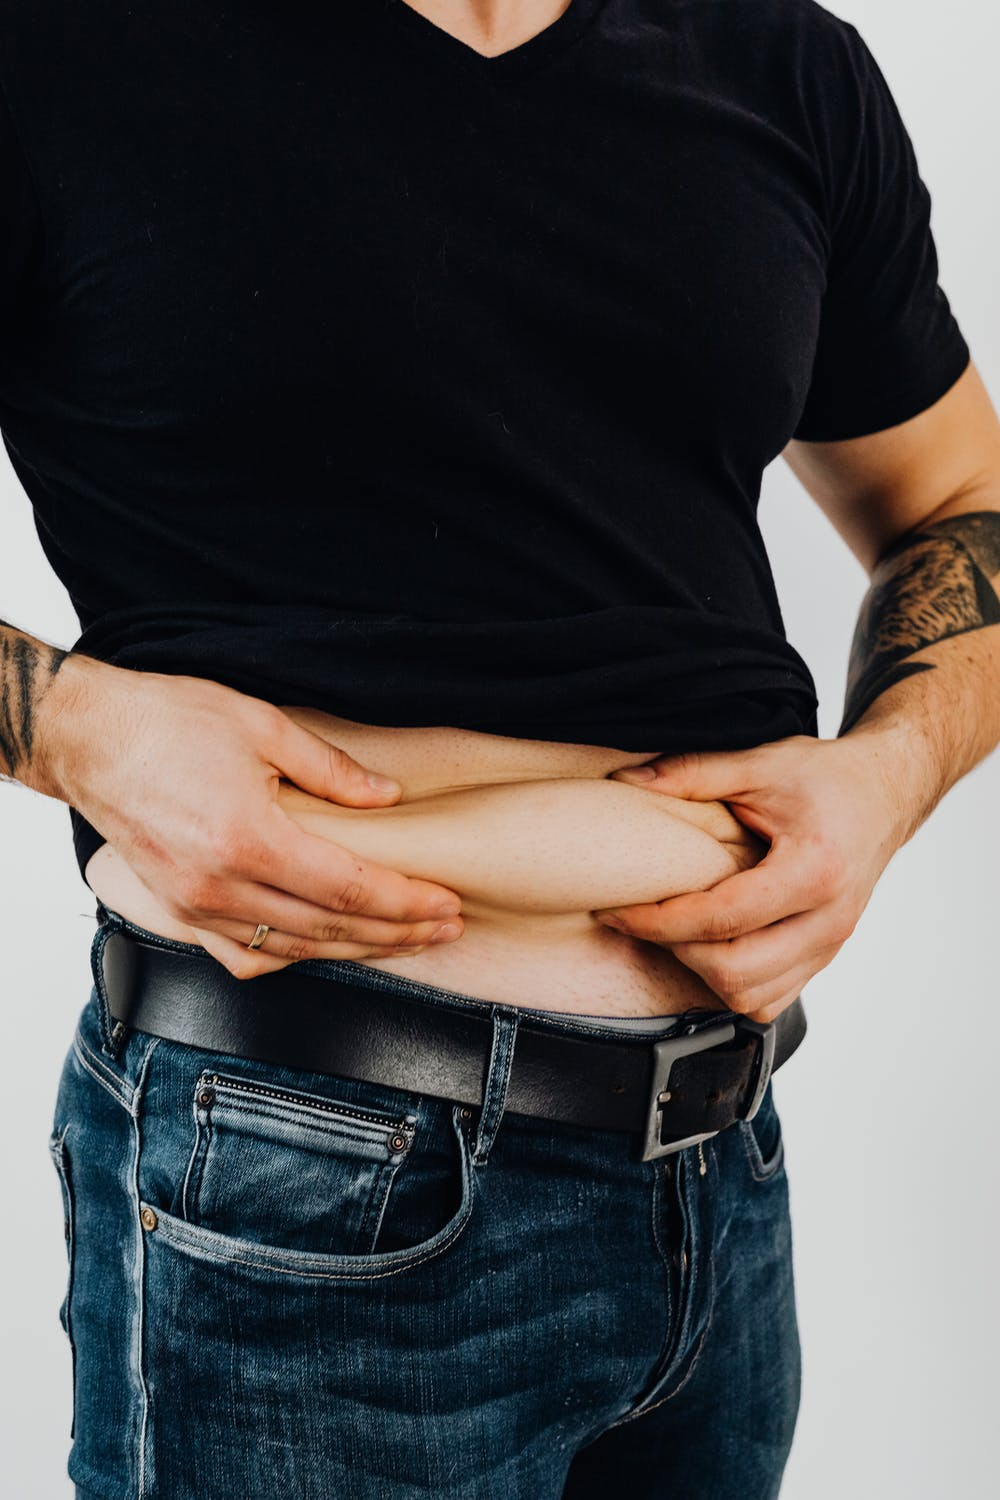 Man in black crew neck t-shirt holding his big belly.   Photo: Pexels